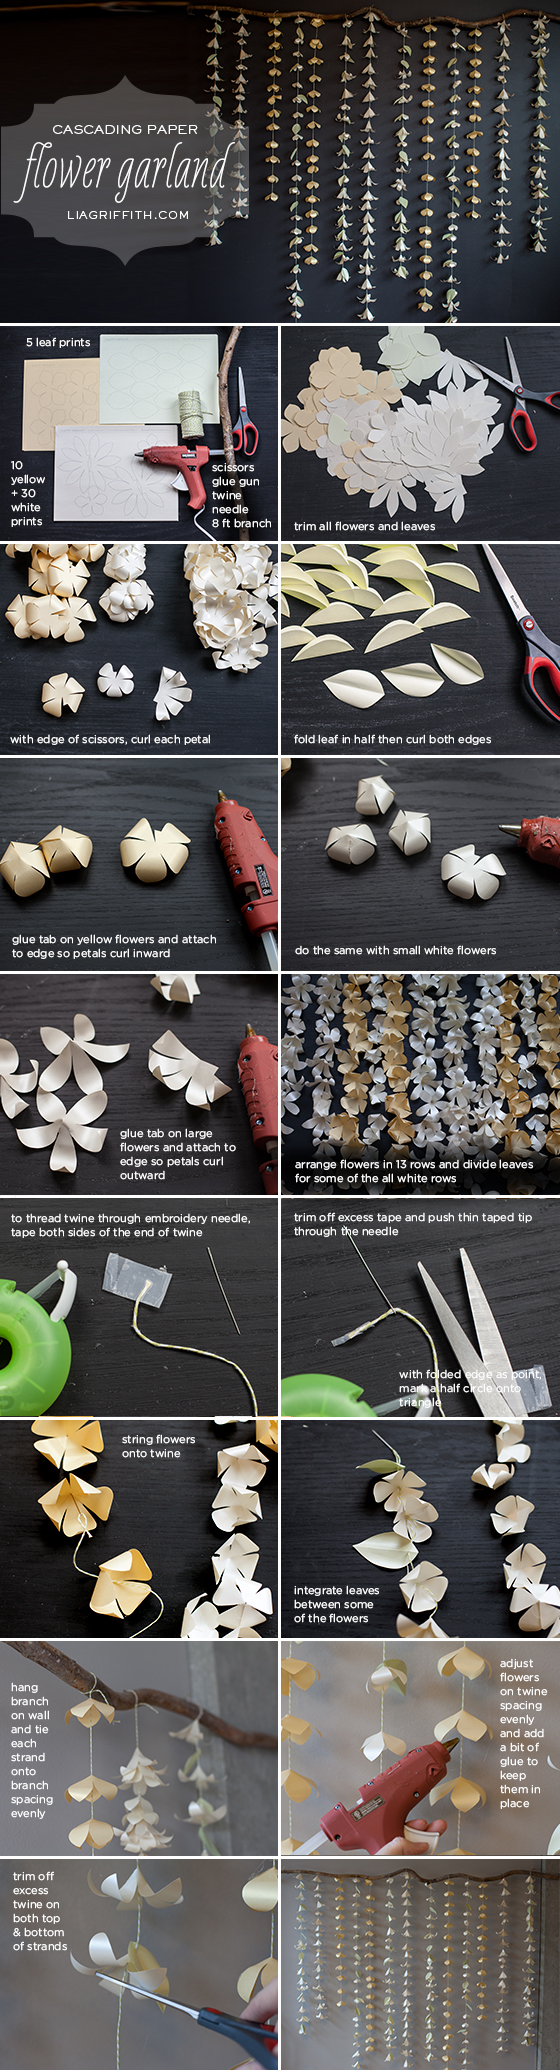 Cascading Paper Flower Garland Tutorial